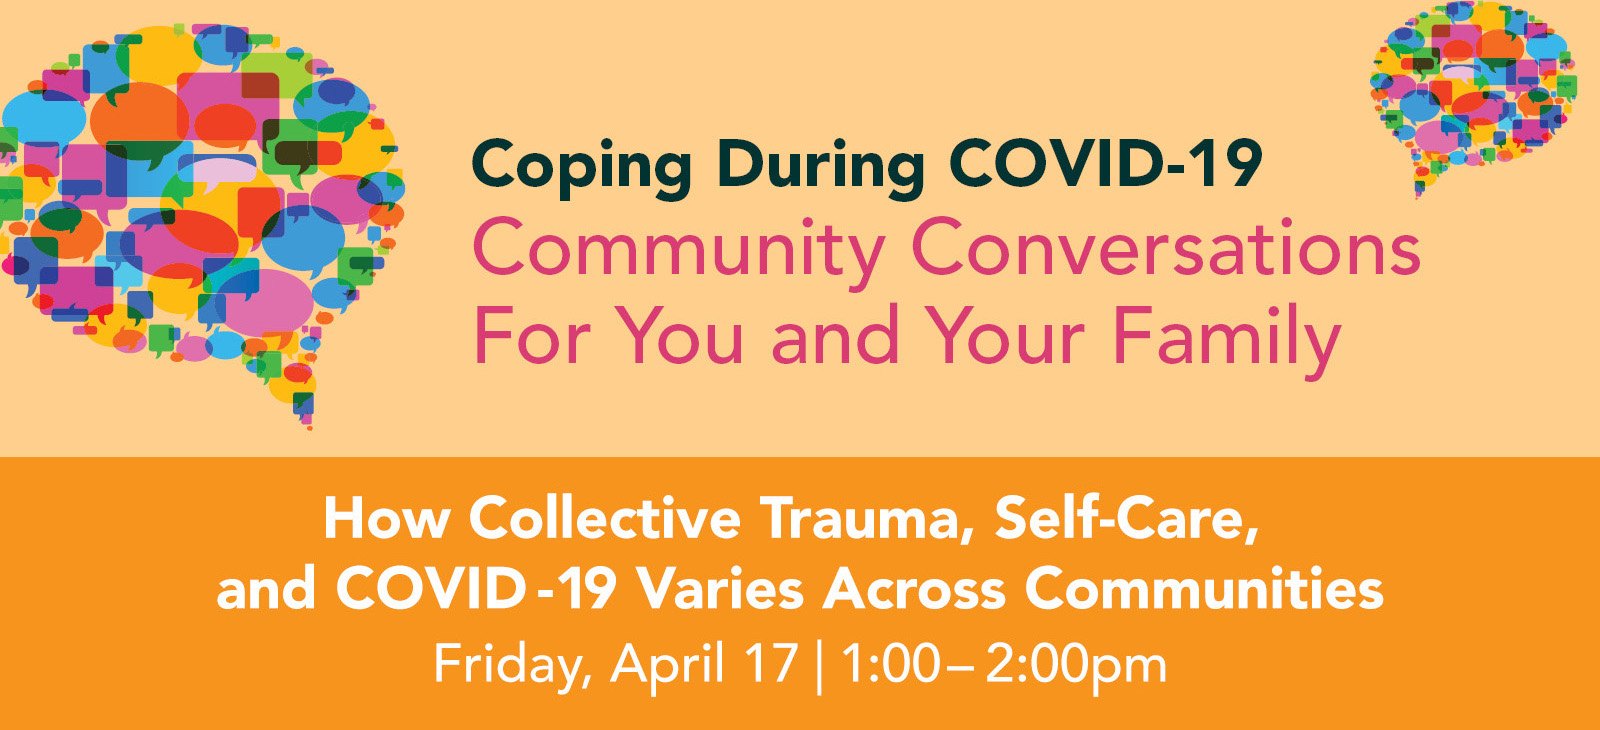 How Collective Trauma, Self-Care, and COVID-19 Varies Across Communities graphic